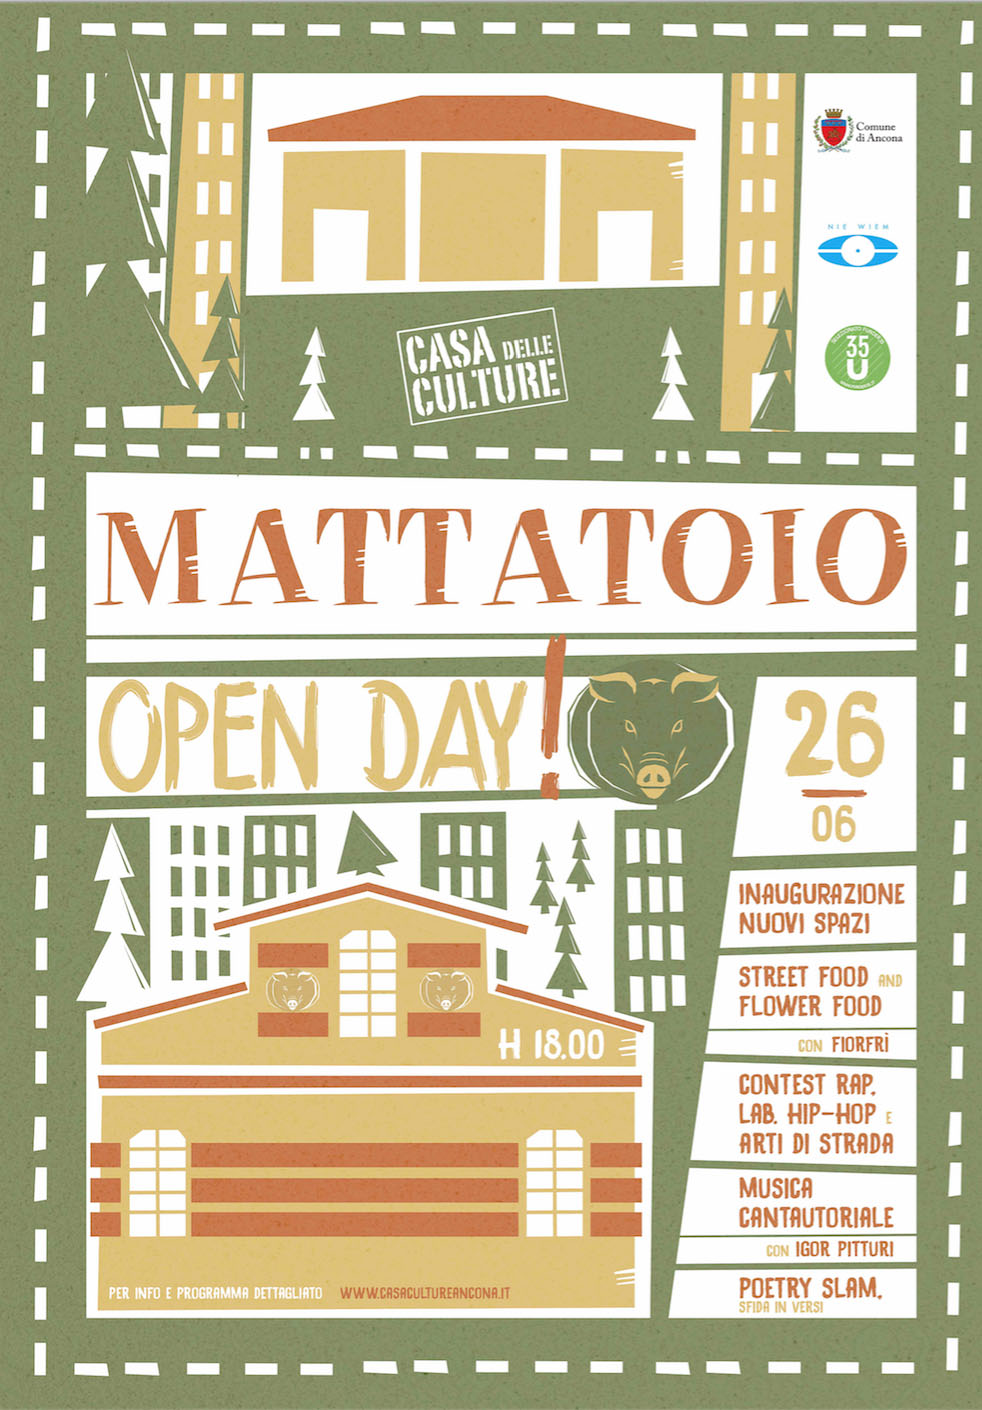 mattatoio open day